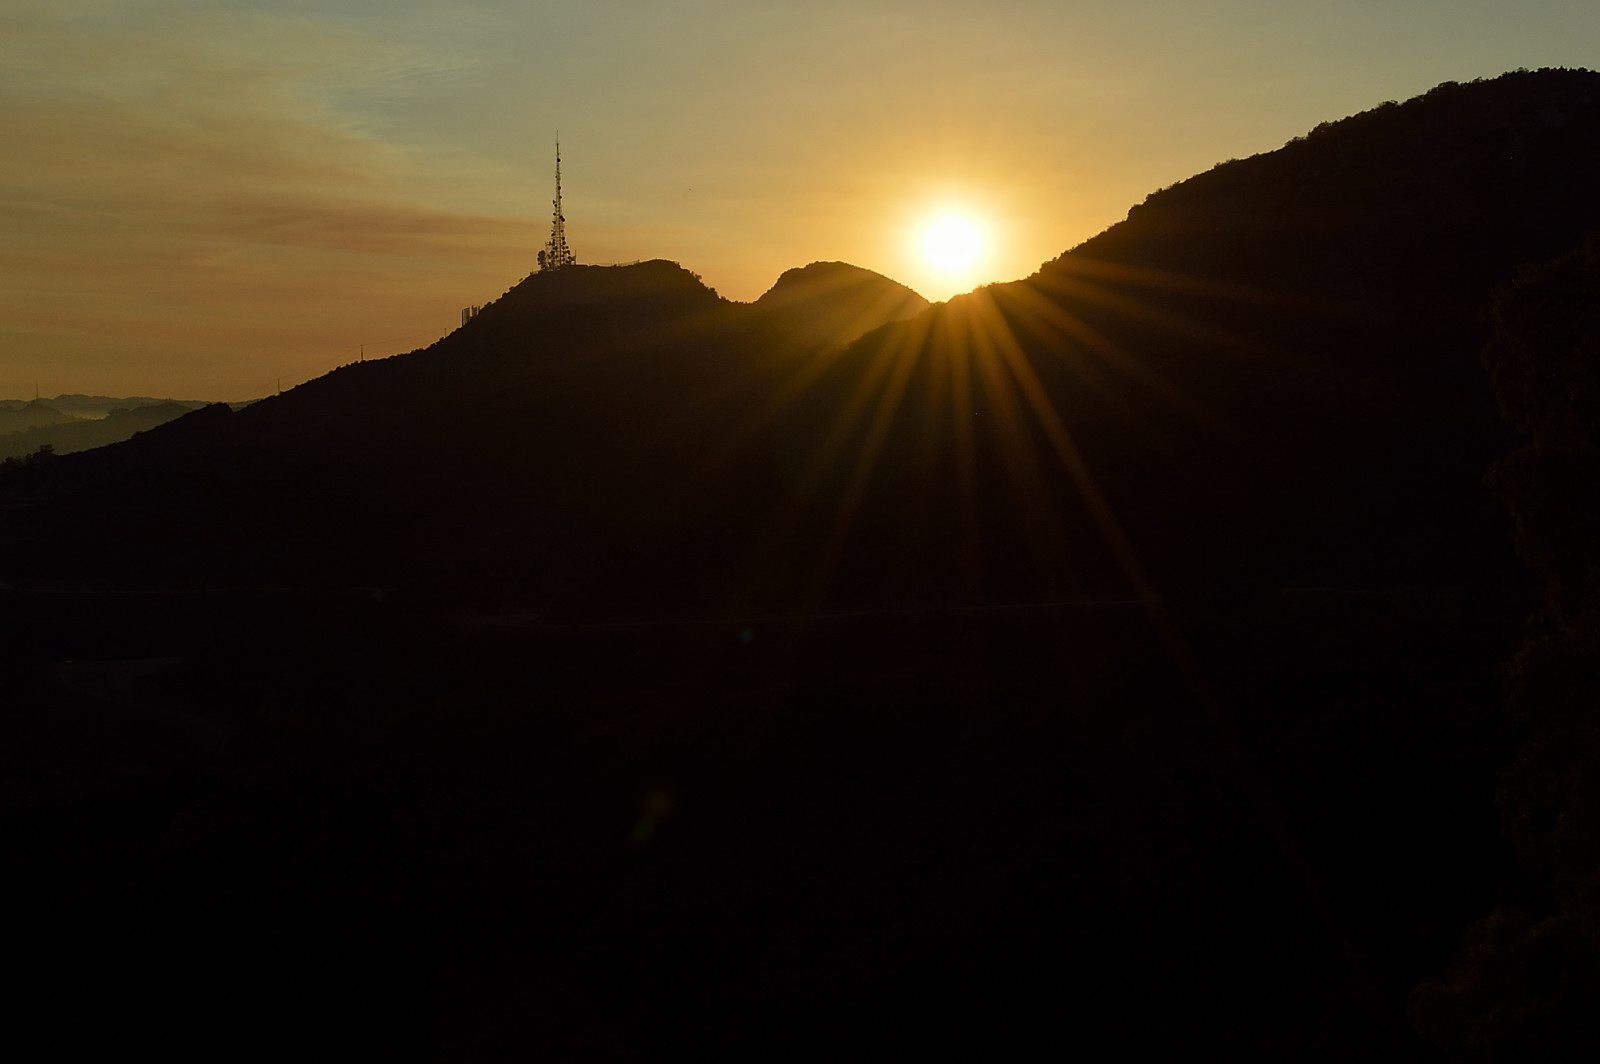 hiking to the Hollywood sign - the sunset